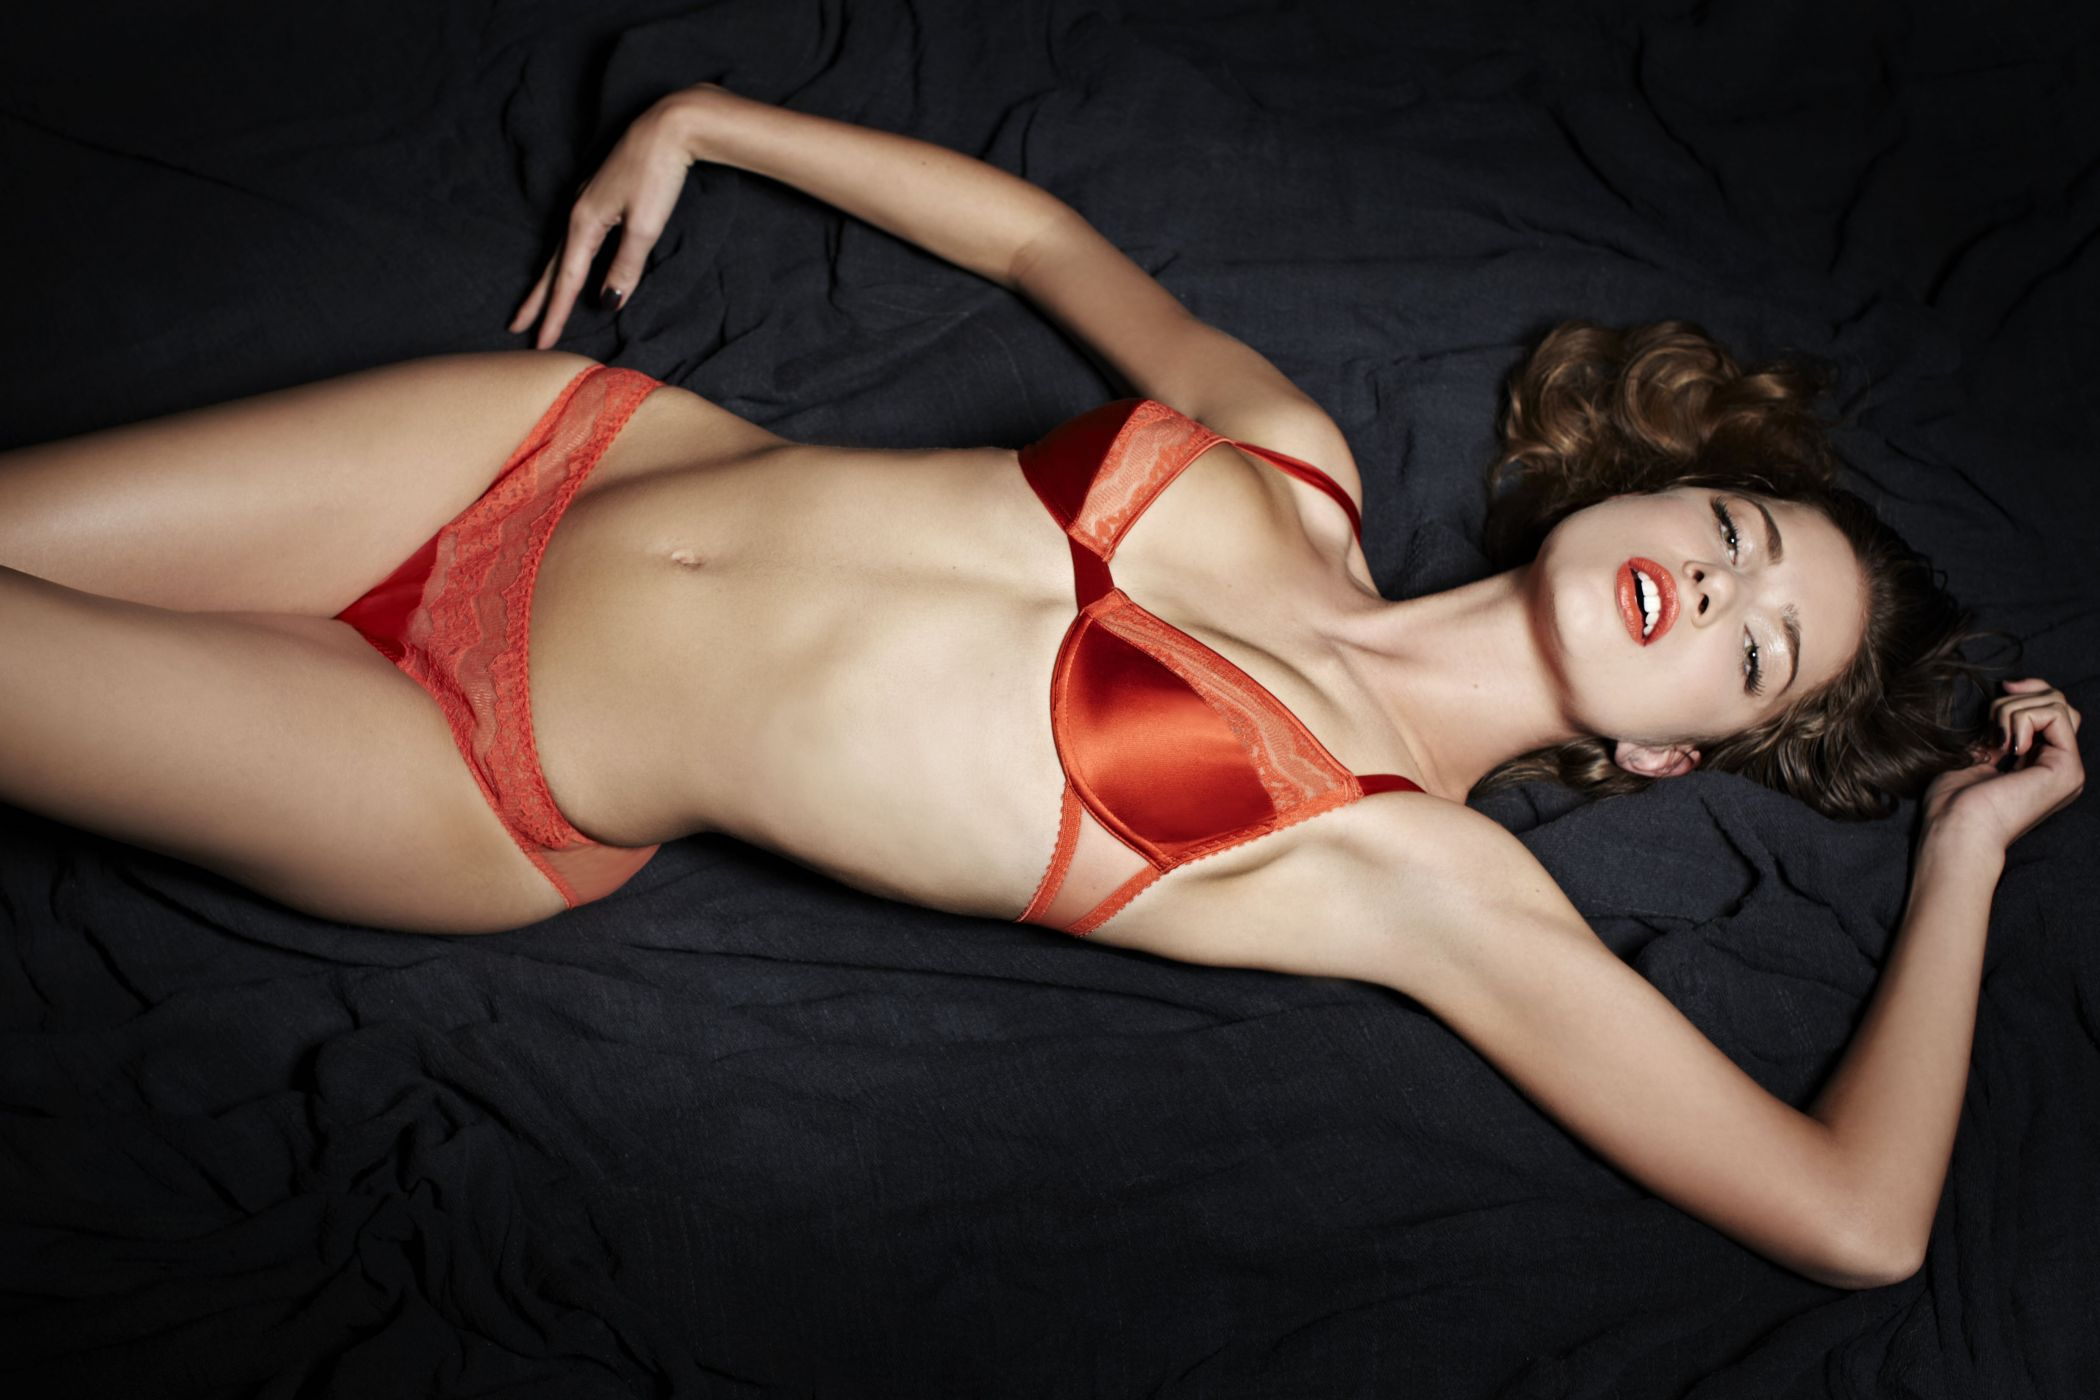 Kelly Brook English Glamour Model Erotic Photos Of Celebrities And Sexy Actresses